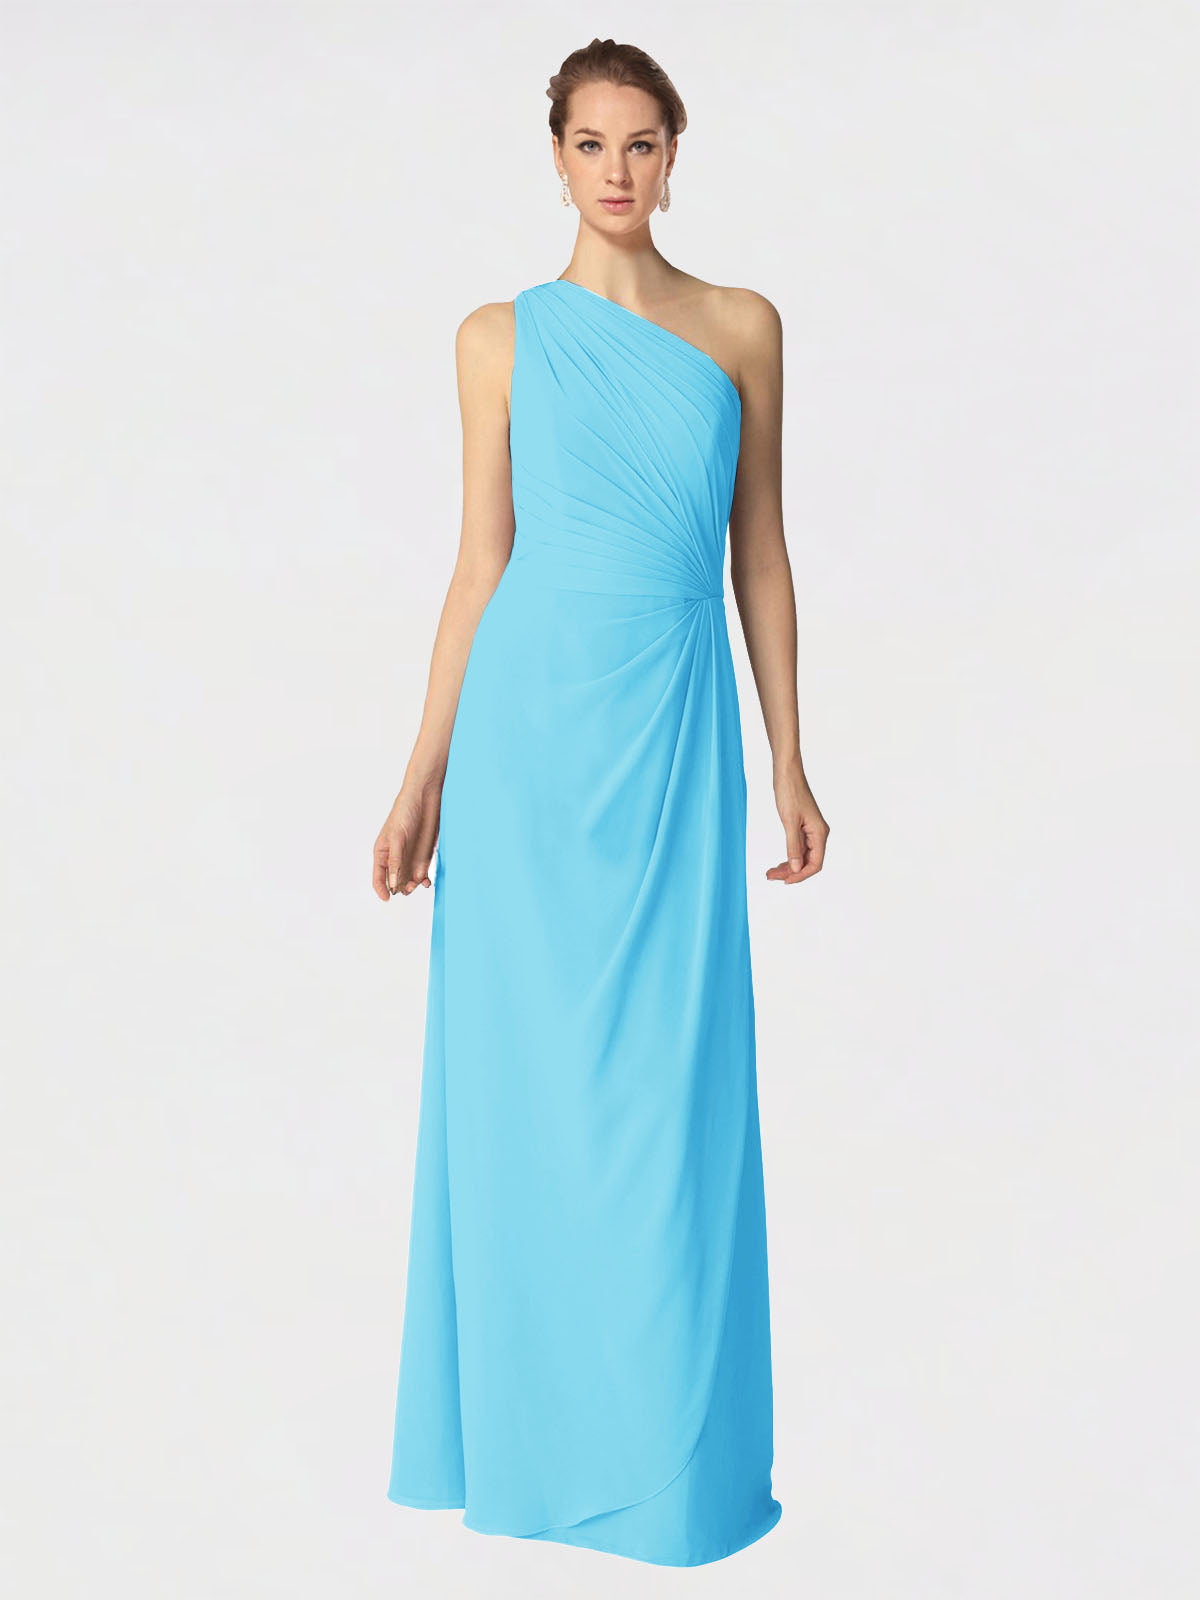 Long A-Line One Shoulder Sleeveless Sky Blue Chiffon Bridesmaid Dress Aurora